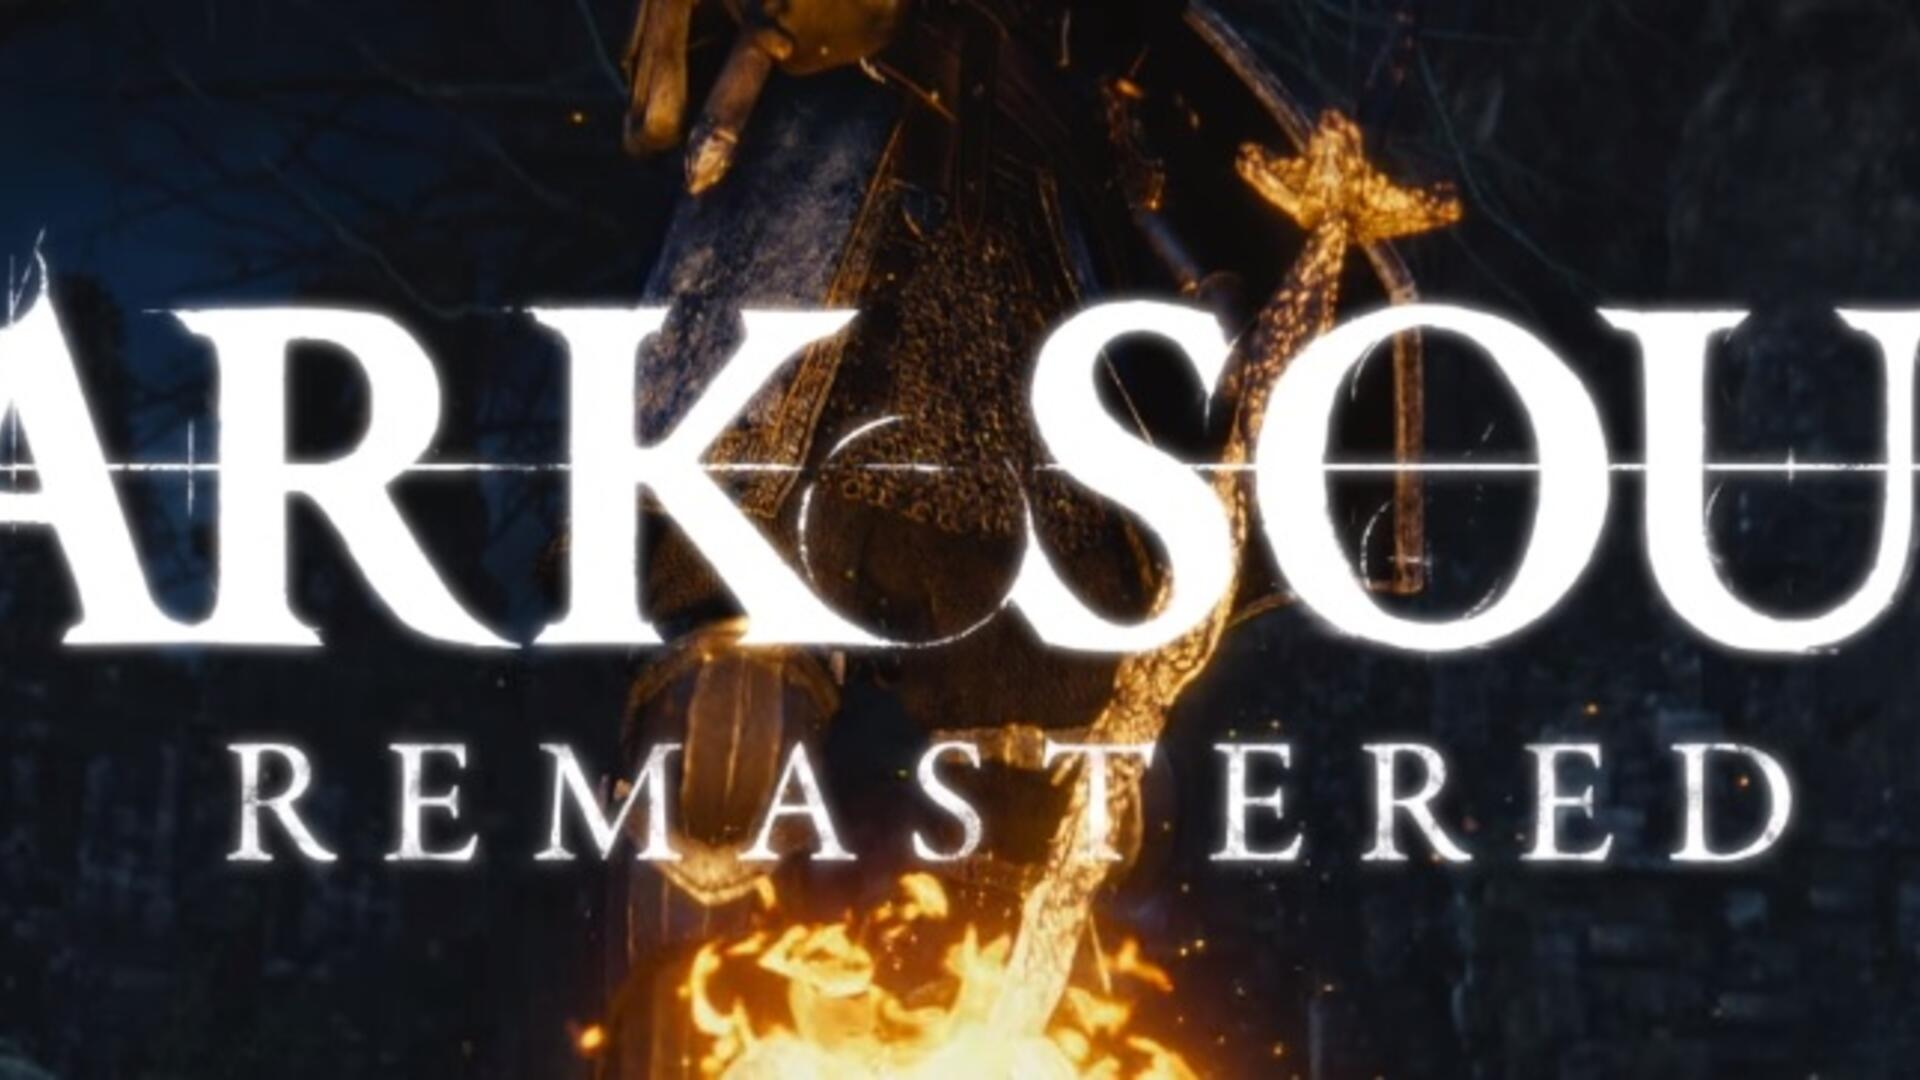 Dark Souls Remastered Reviews, Switch Release Date, Price, Amiibo, Frame Rate, Resolution - PS4, Xbox One, PC Changes